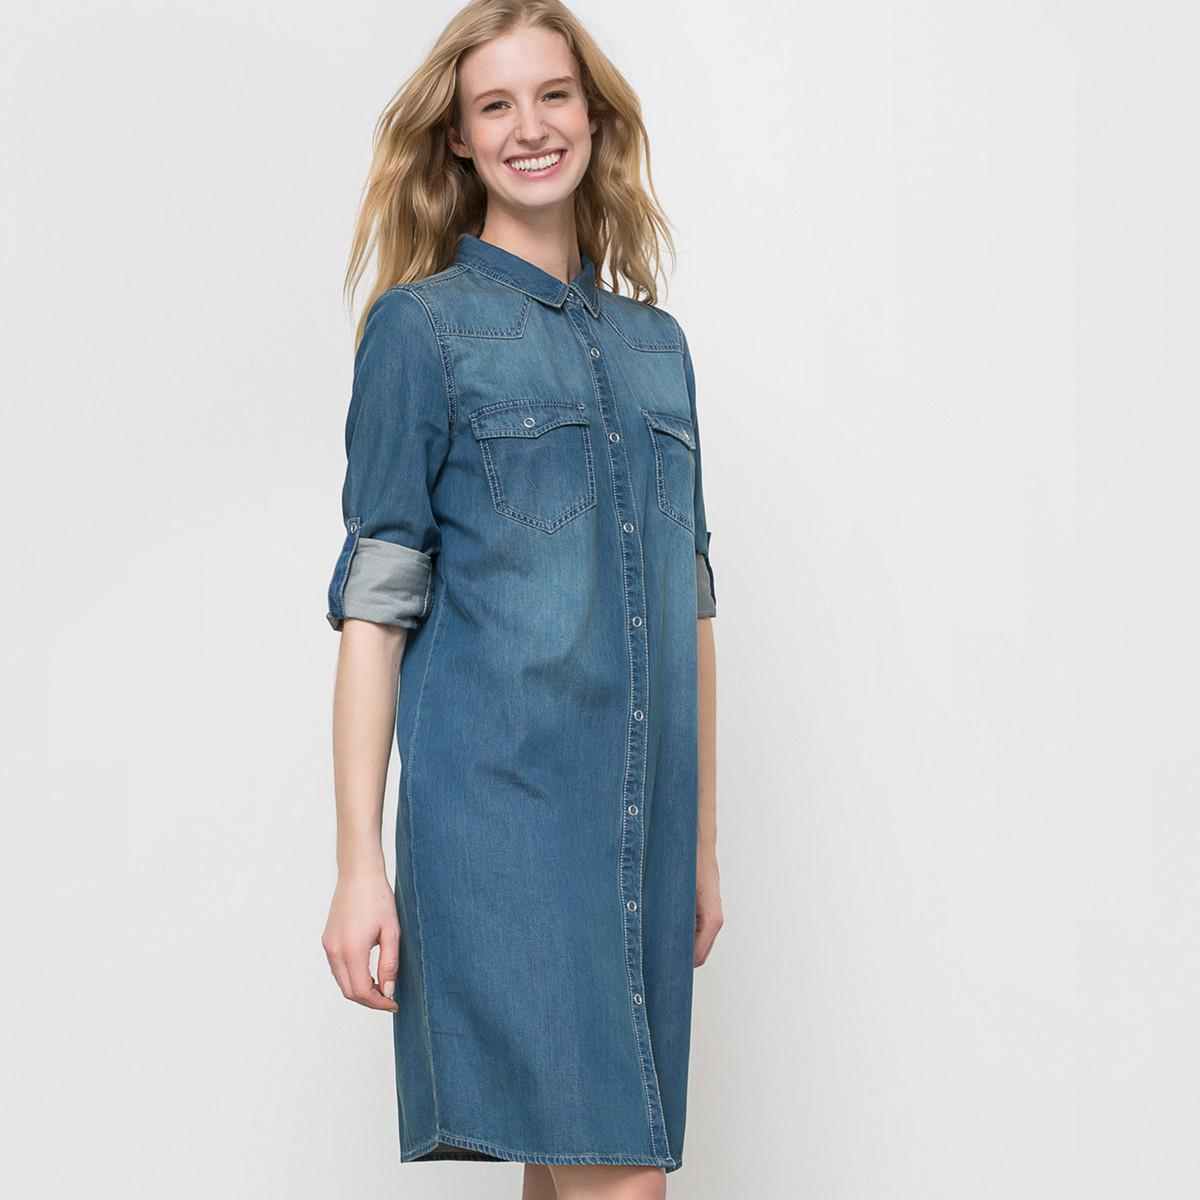 dcfc92cf7b6 Sharagano Womens Denim Shirt Dress